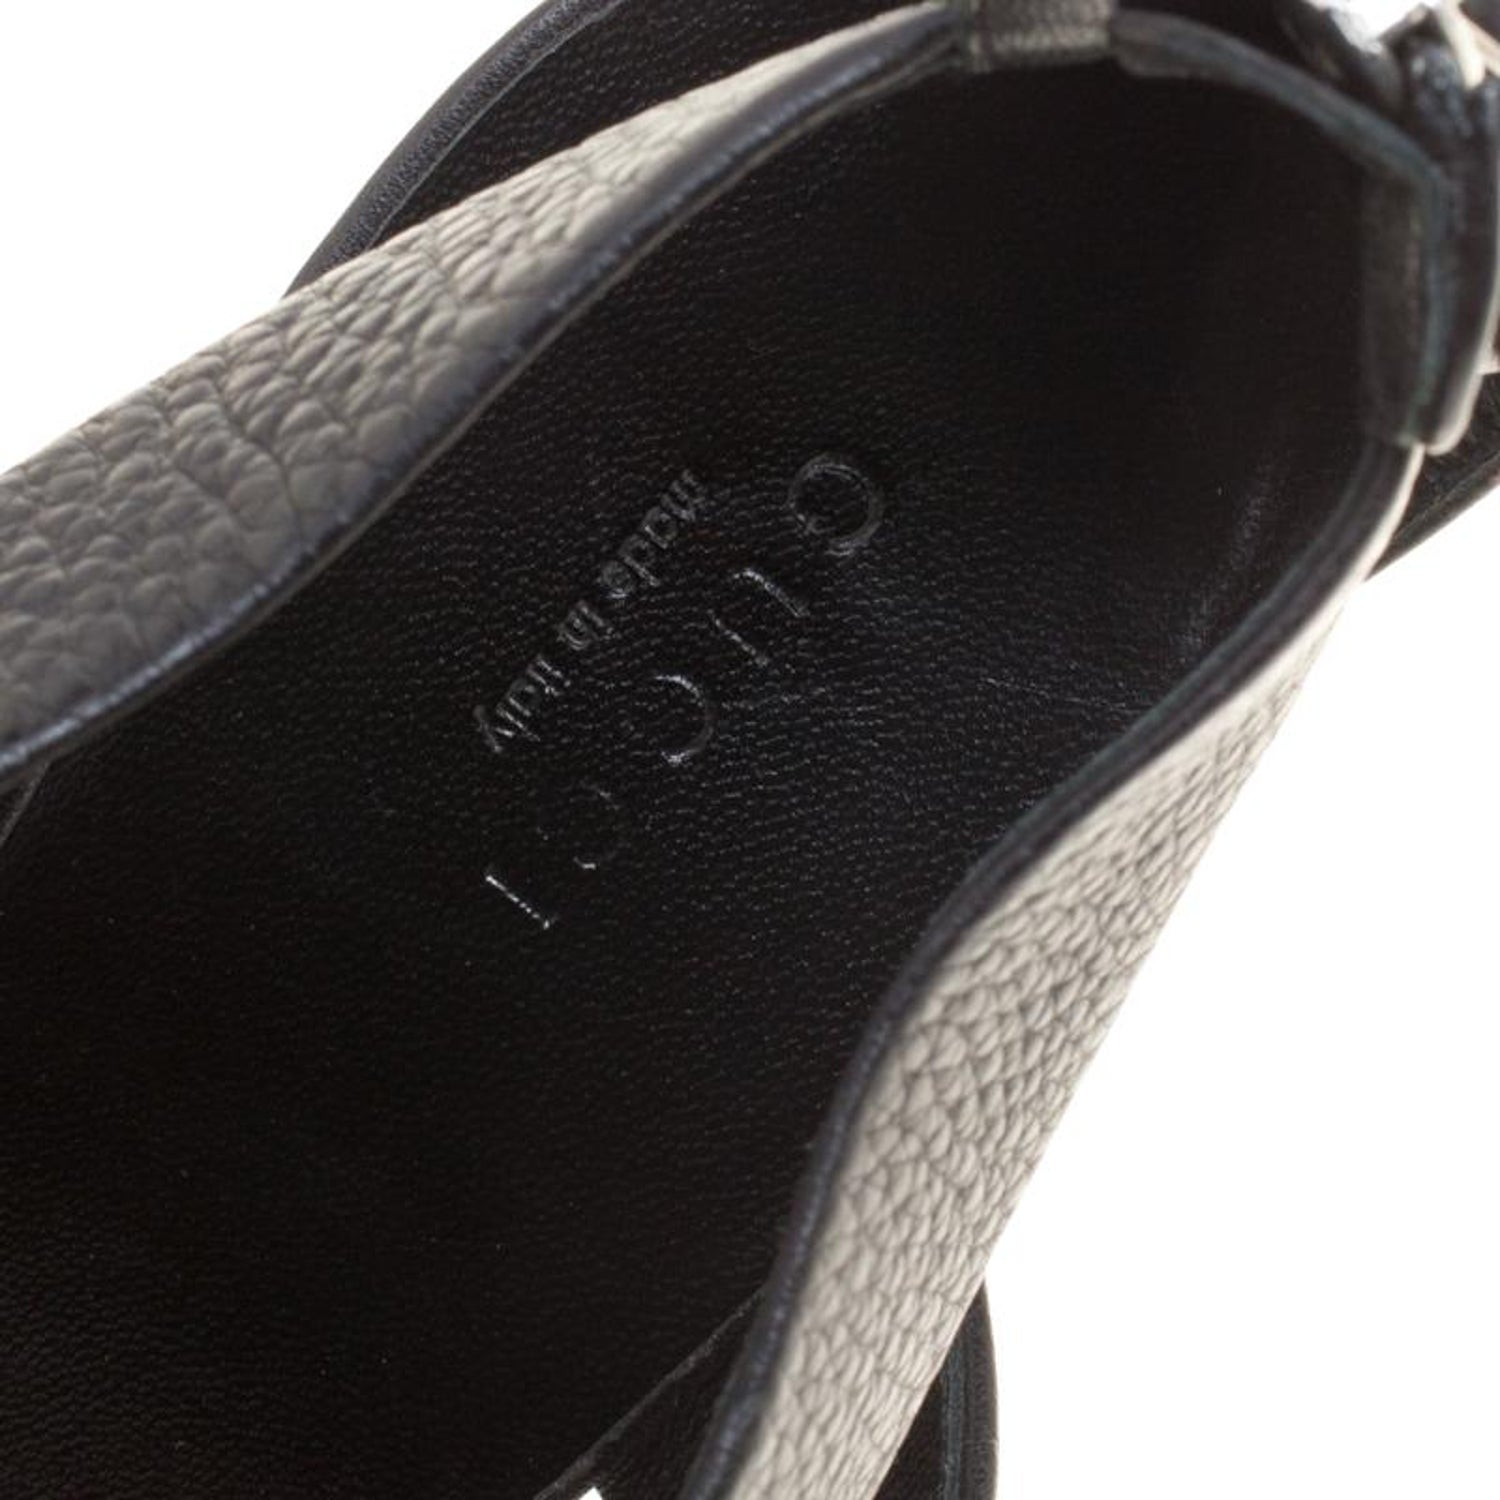 52df07cb5 Gucci Black Leather Sandals Size 39.5 For Sale at 1stdibs